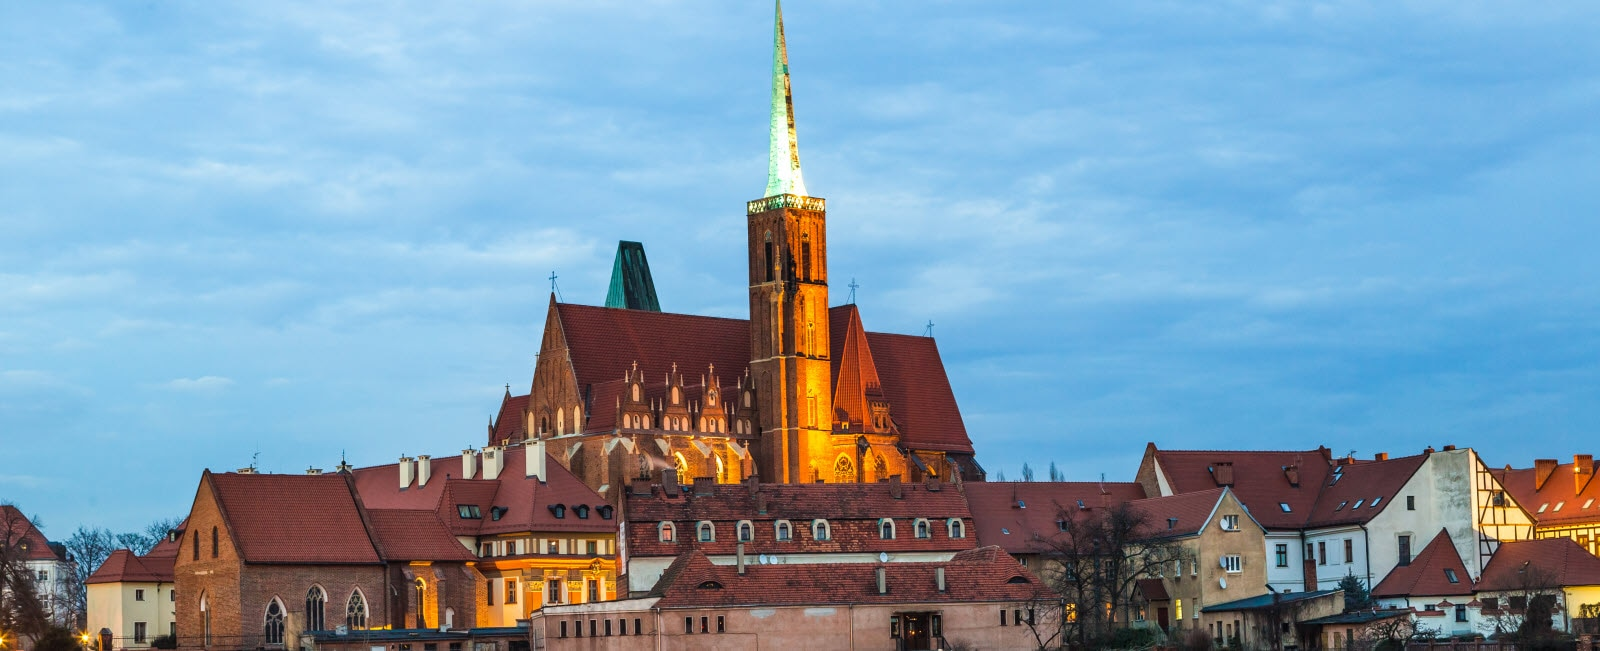 A cityscape cathedral, river Odra. Wroclaw, Poland, at dusk. Mostphotos.com